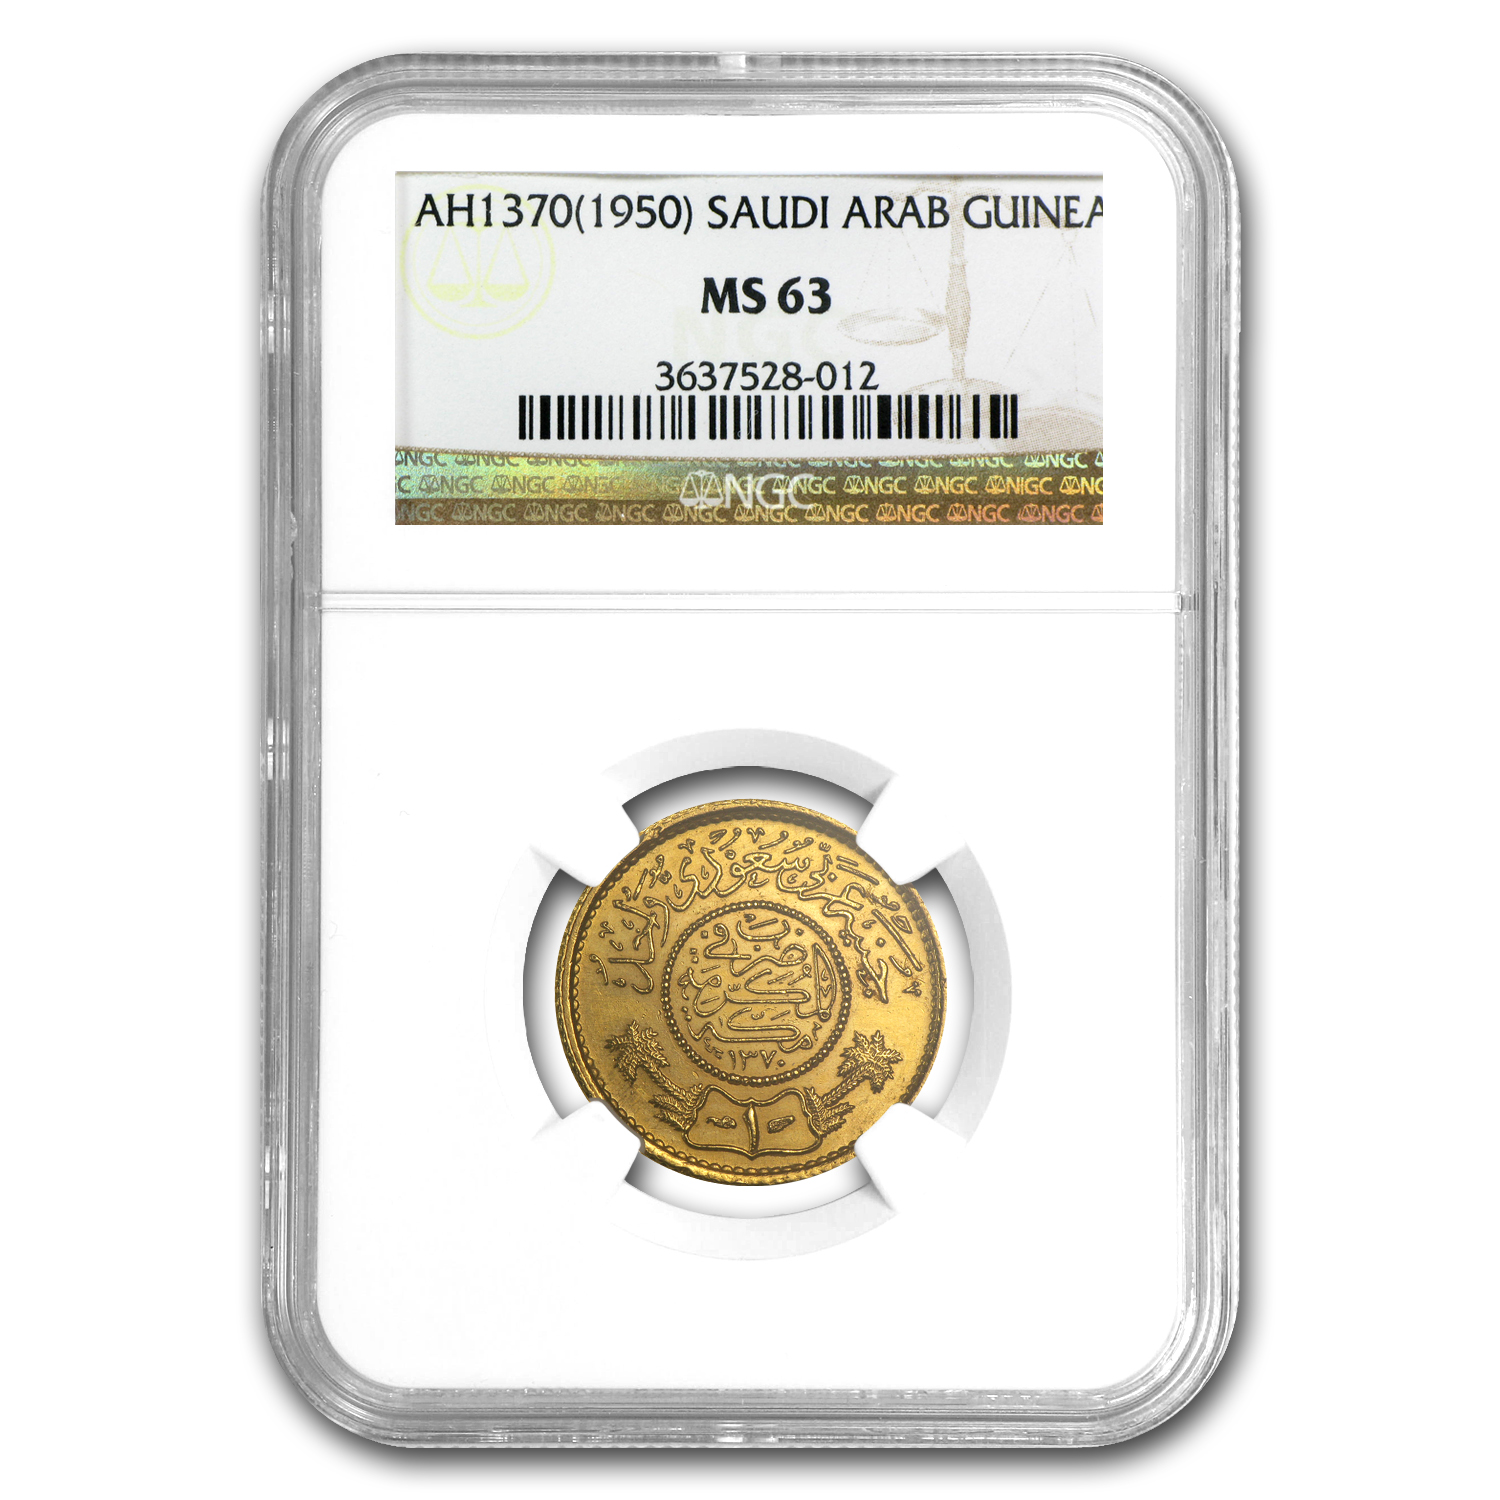 Saudi Arabia AH1370-1950 One Guinea Gold MS 63 NGC